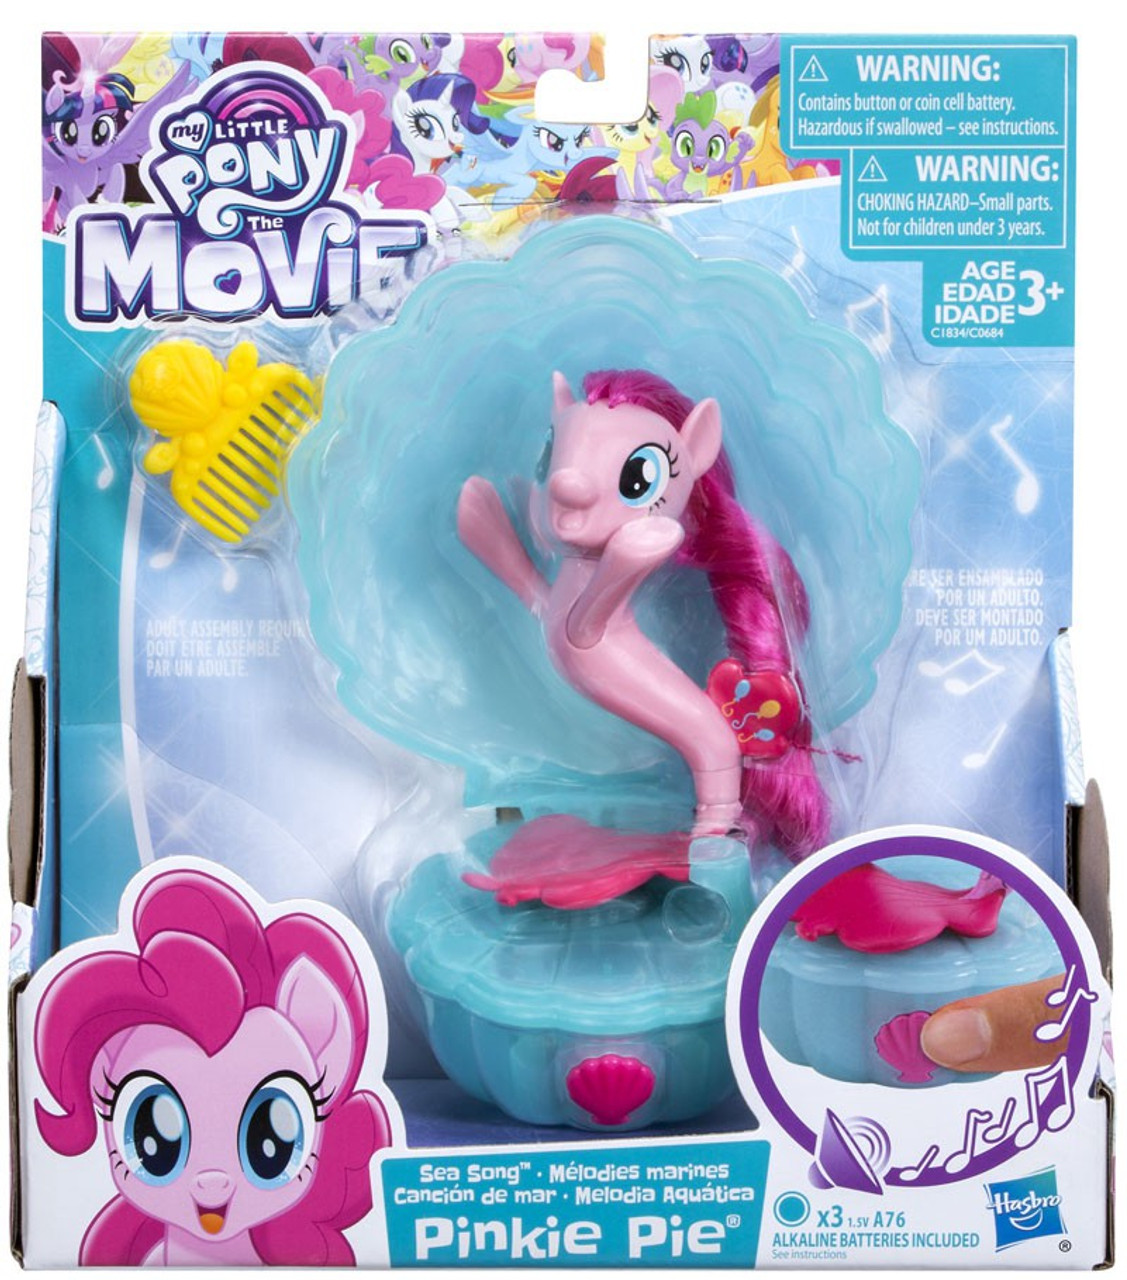 My Little Pony The Movie Pinkie Pie Sea Song Figure Damaged Package Hasbro  Toys - ToyWiz 5b9d7b9b5f